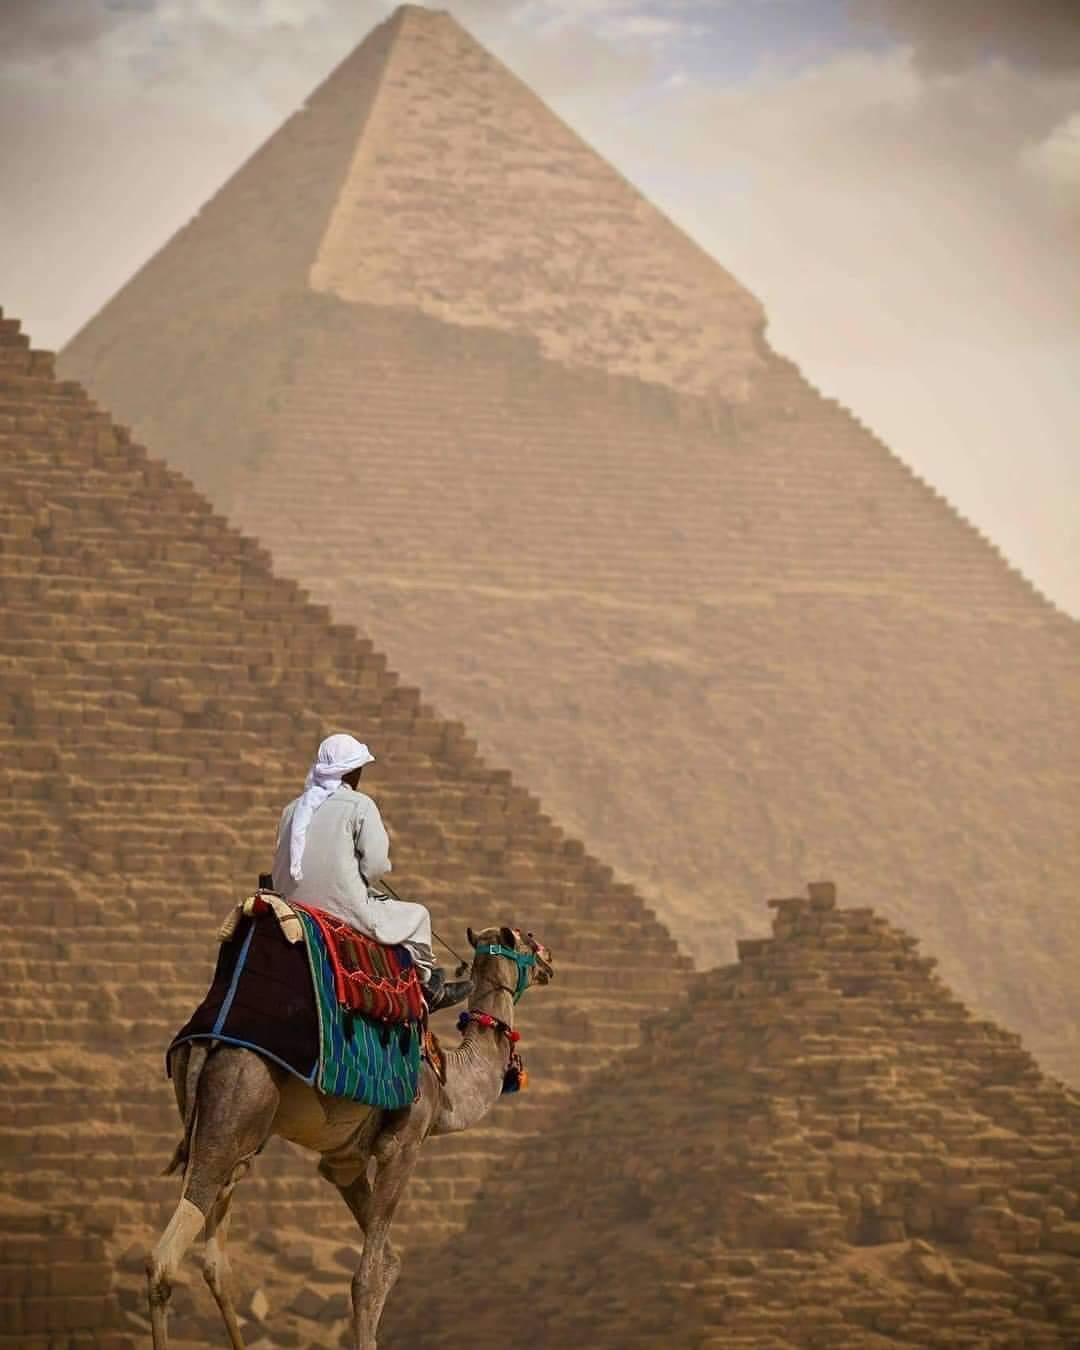 https://www.egyptravel4you.com/wp-content/uploads/2018/09/FB_IMG_1562312582663.jpg